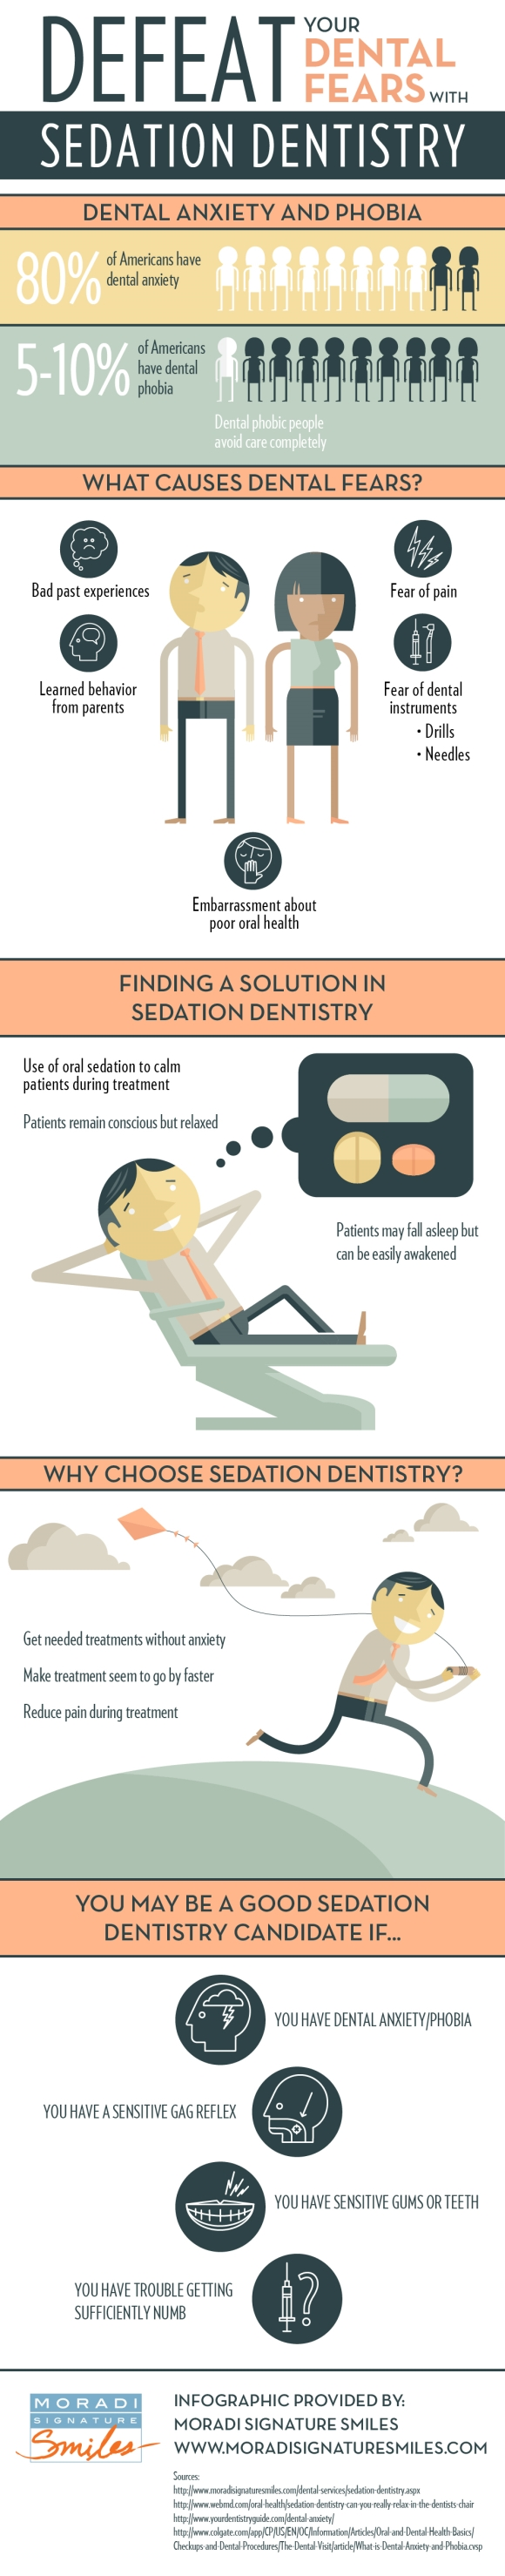 Defeat-Your-Dental-Fears-with-Sedation-Dentistry